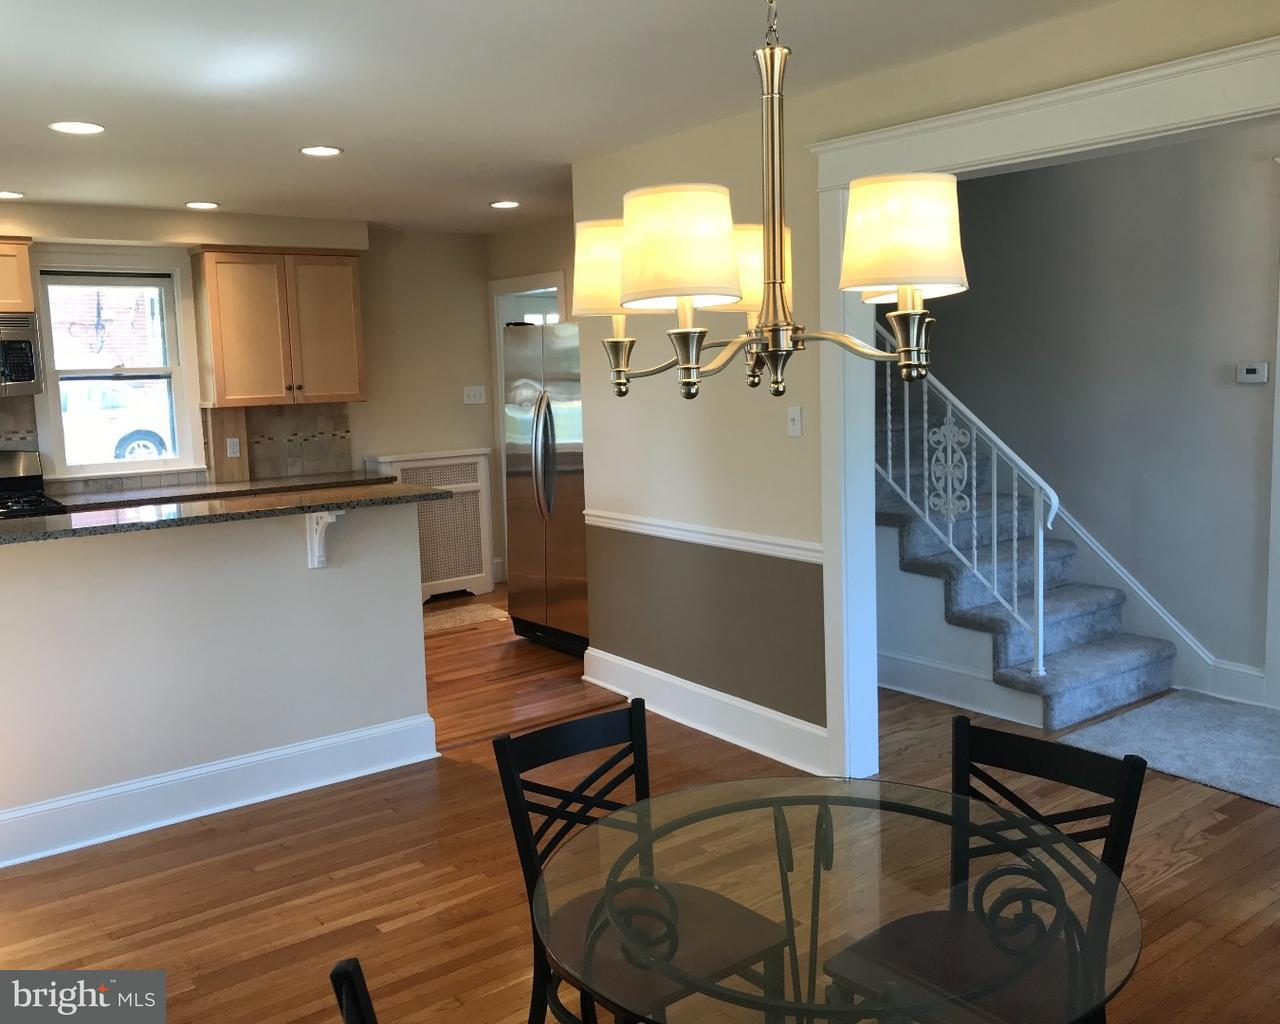 201 RIVERVIEW AVE, RIDLEY PARK - Listed at $274,500, RIDLEY PARK